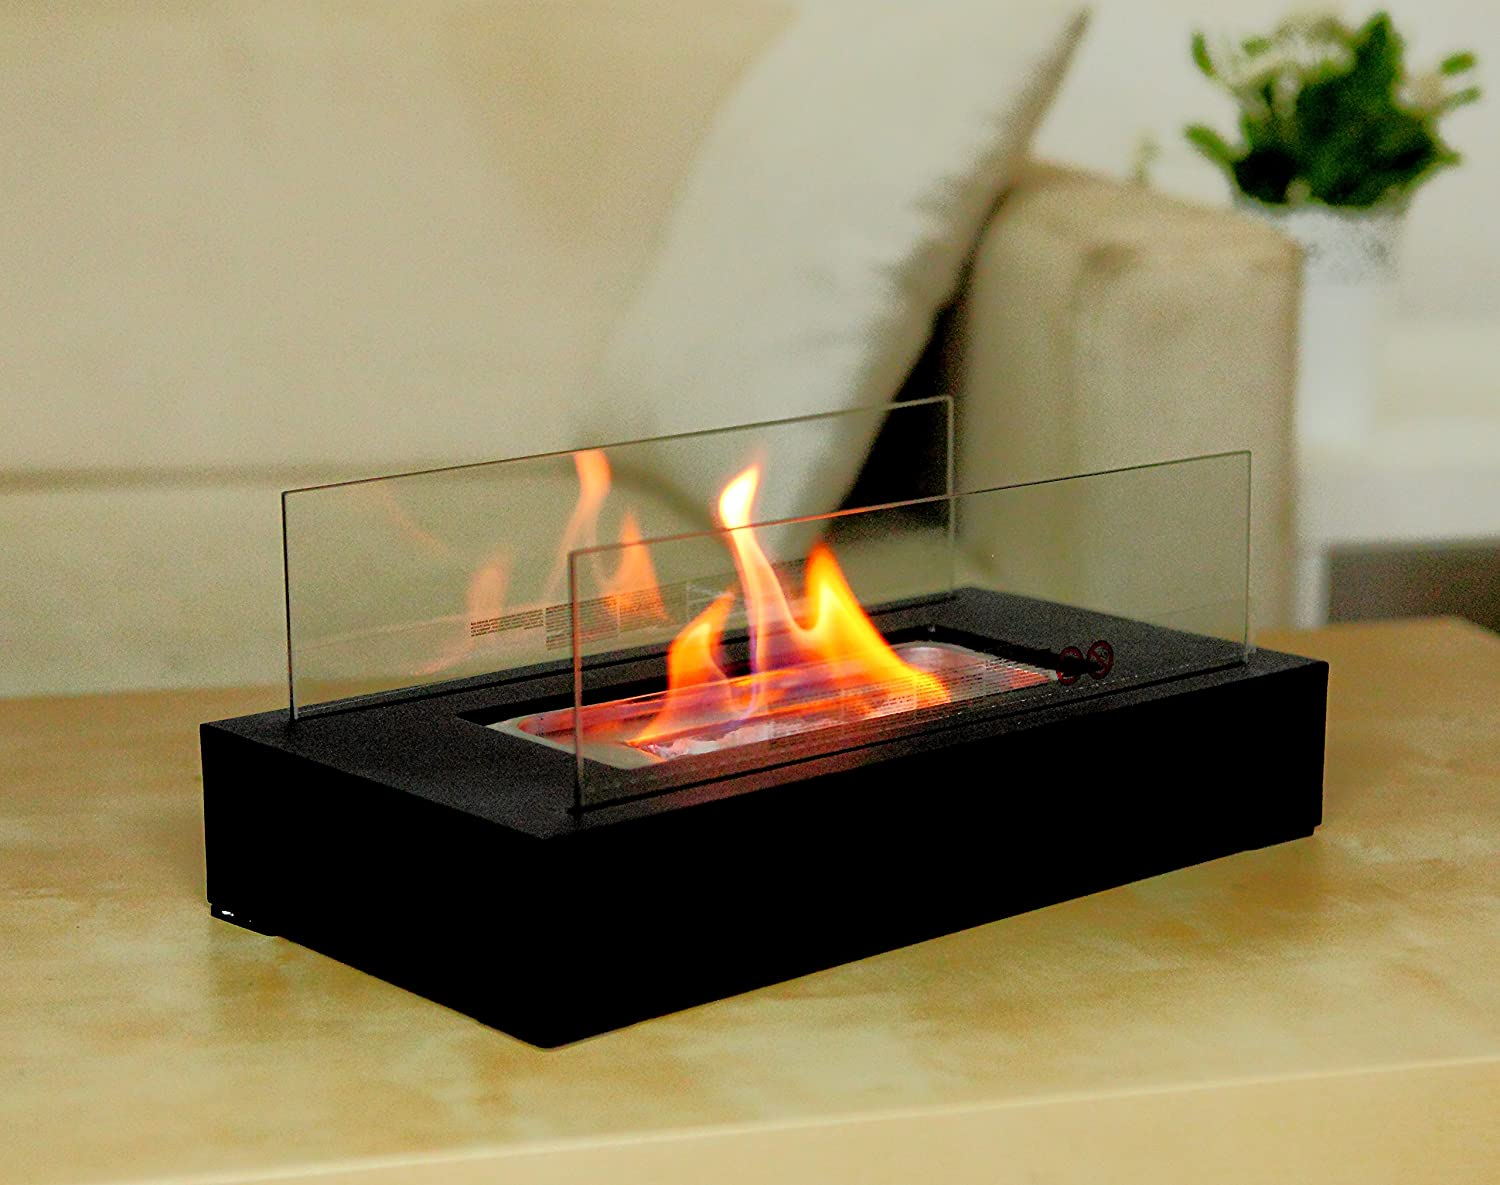 Fire Desire 39 S Cubic Fireplace Best Seller Perfect For Table Top Tempered Glass Ebay